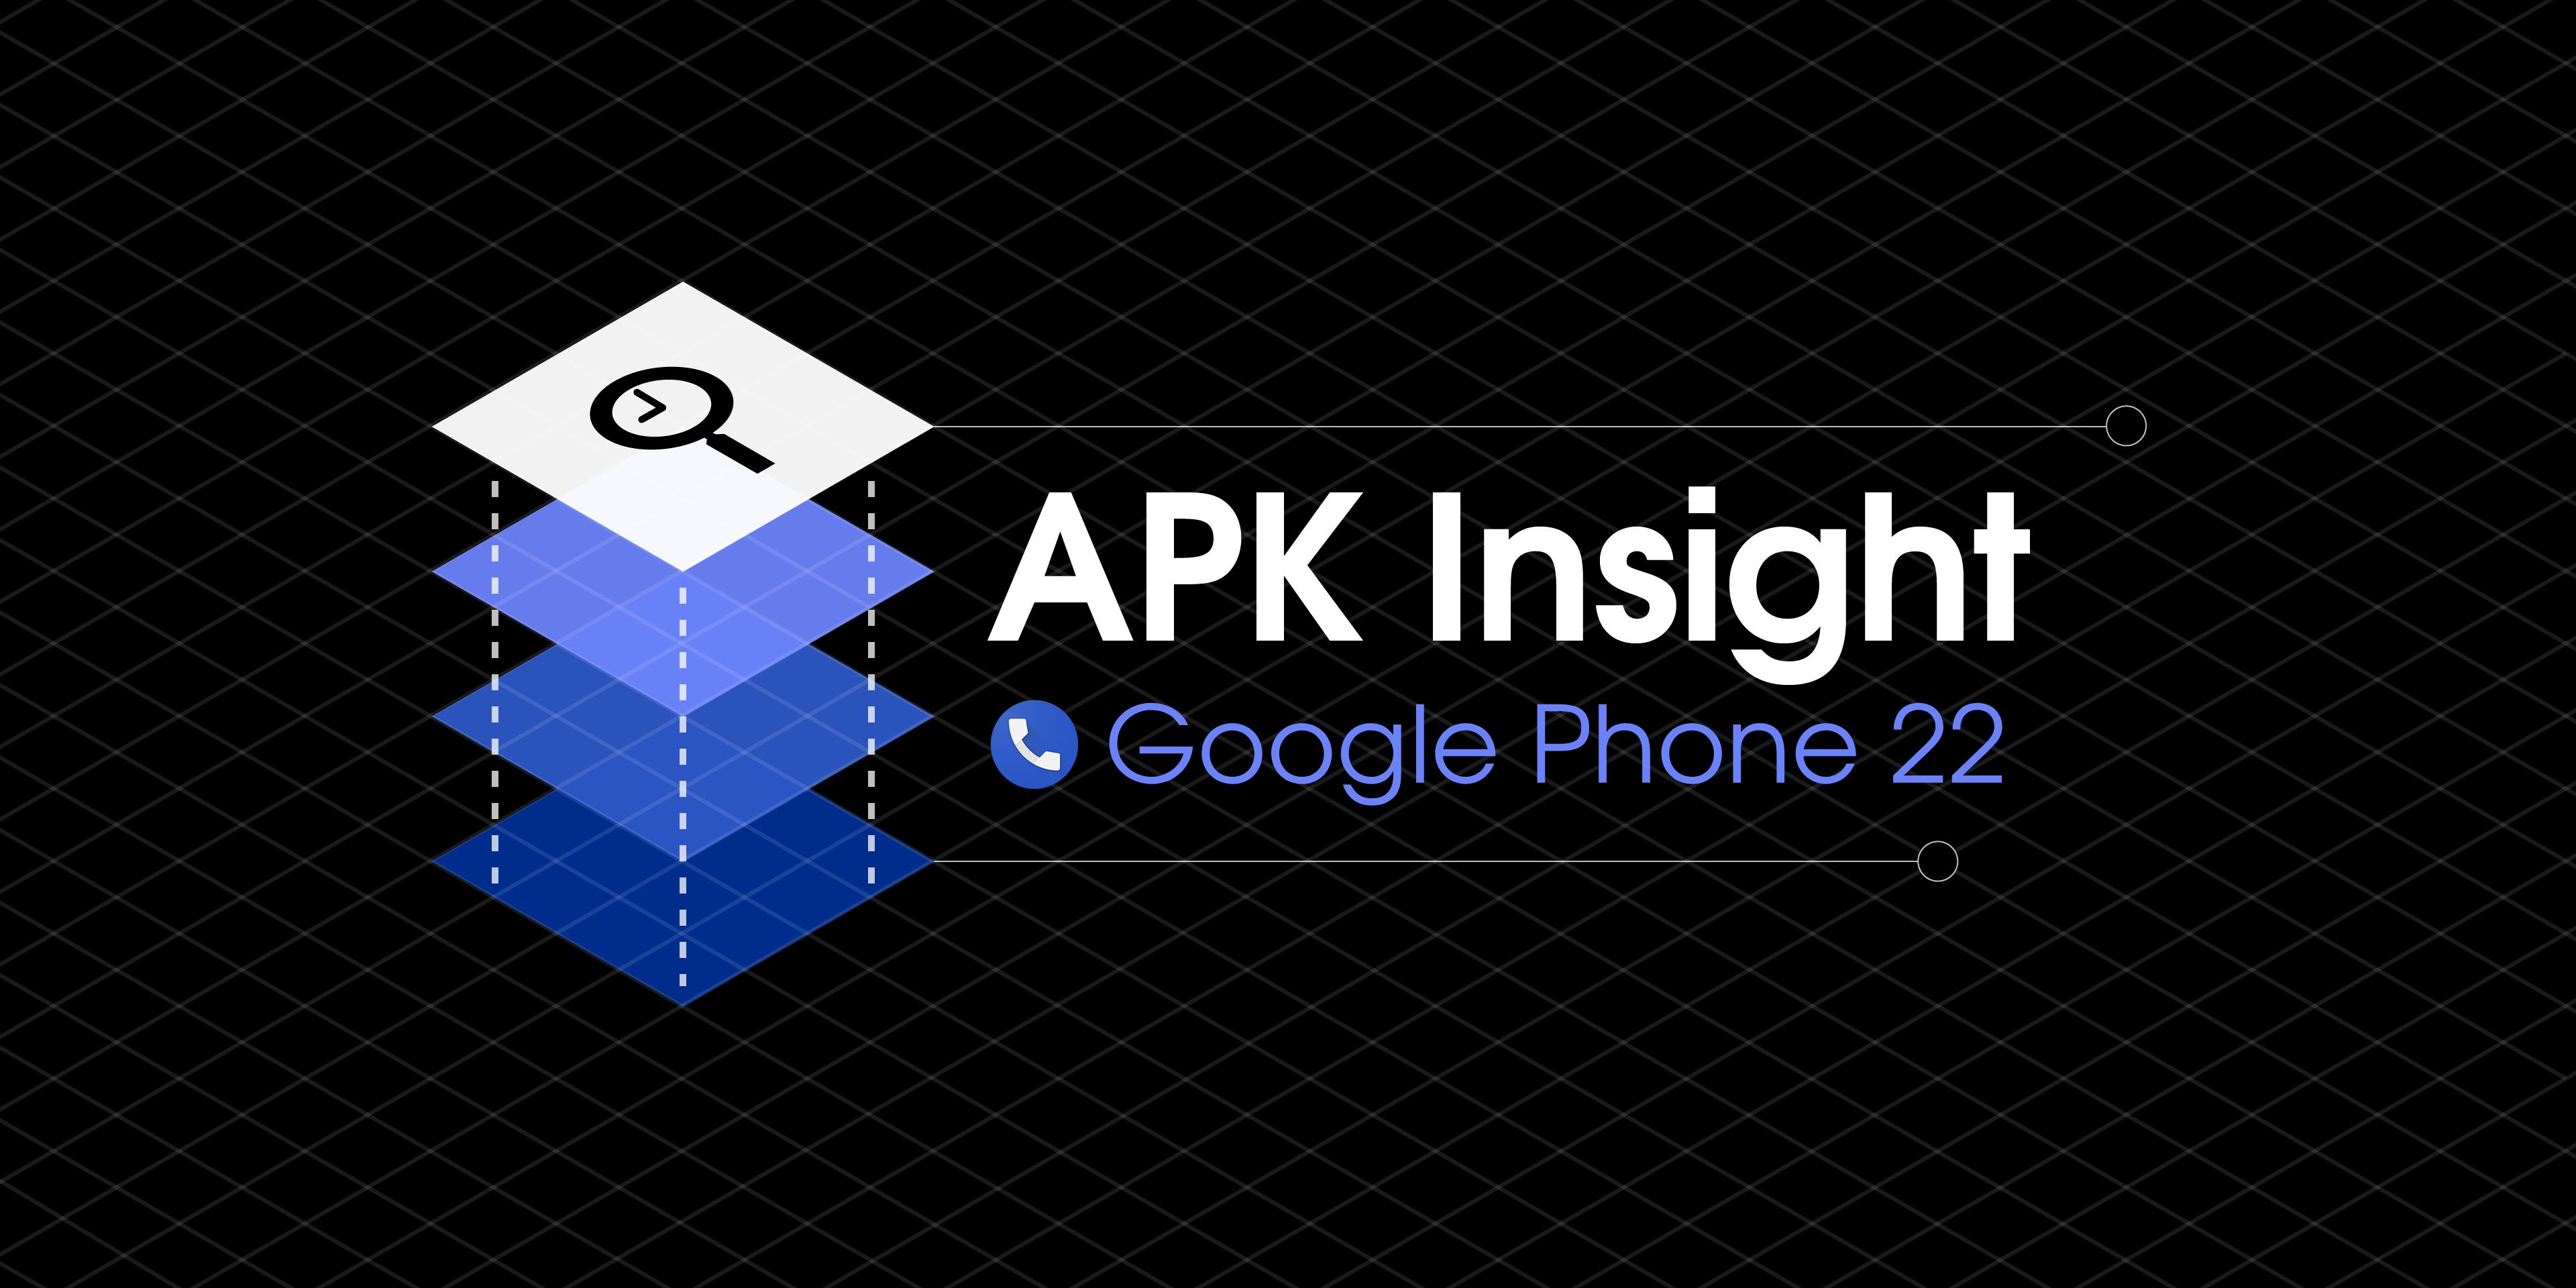 google phone 22 preps real time transcription feature to screen unwanted calls apk insight